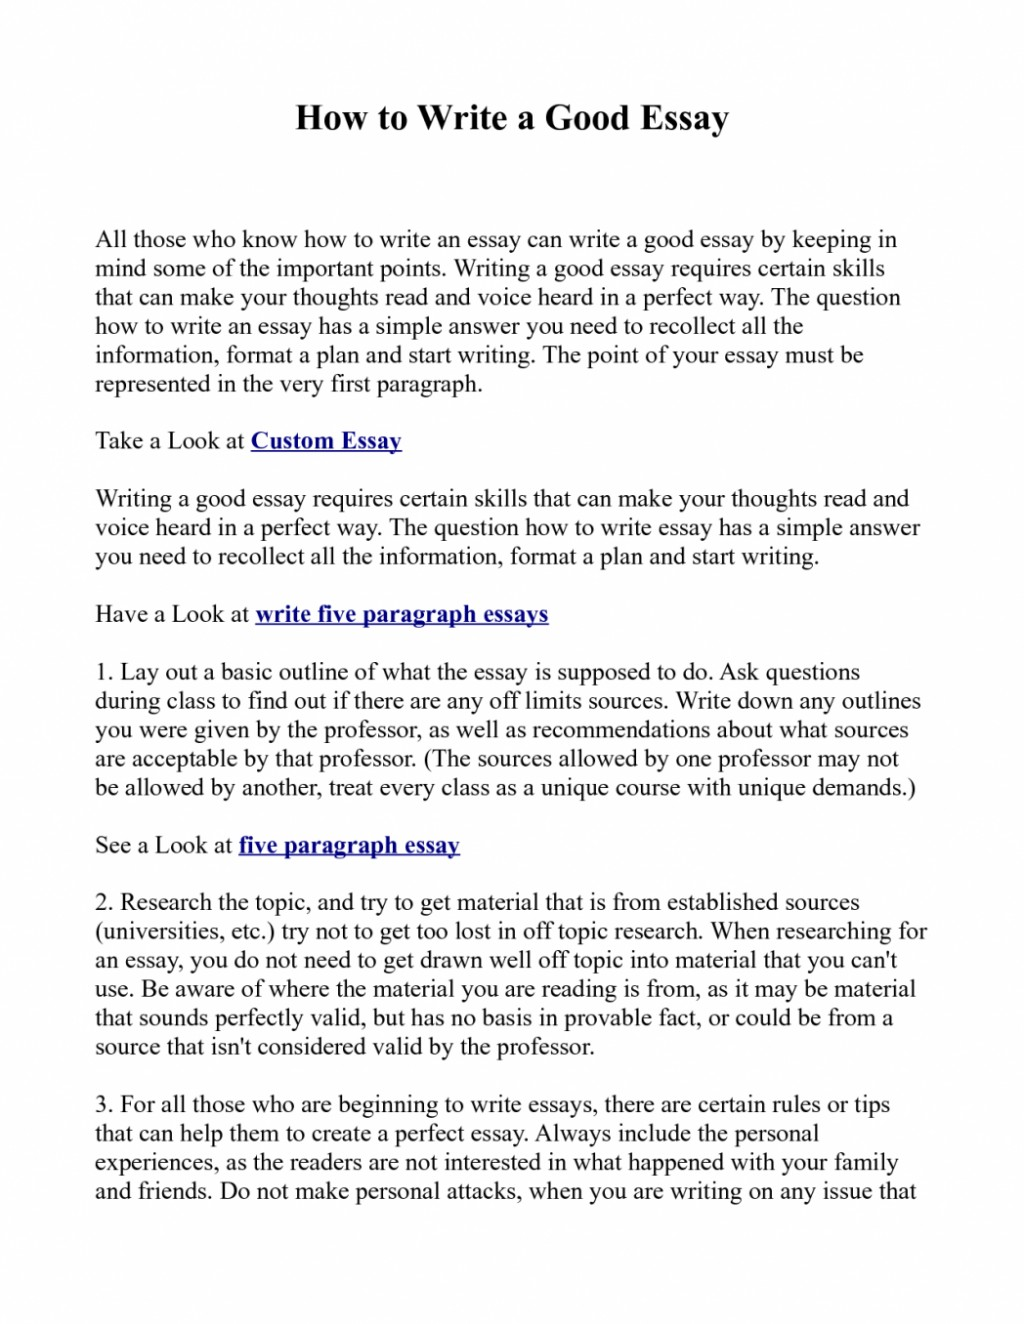 010 Essay Example Writing Good College Essays How To Write An Excellent The Start About Yourself Examples Ex1id Off Application Hook Prompt Failure Your Background Awesome A Paper For Introduction Biography Large